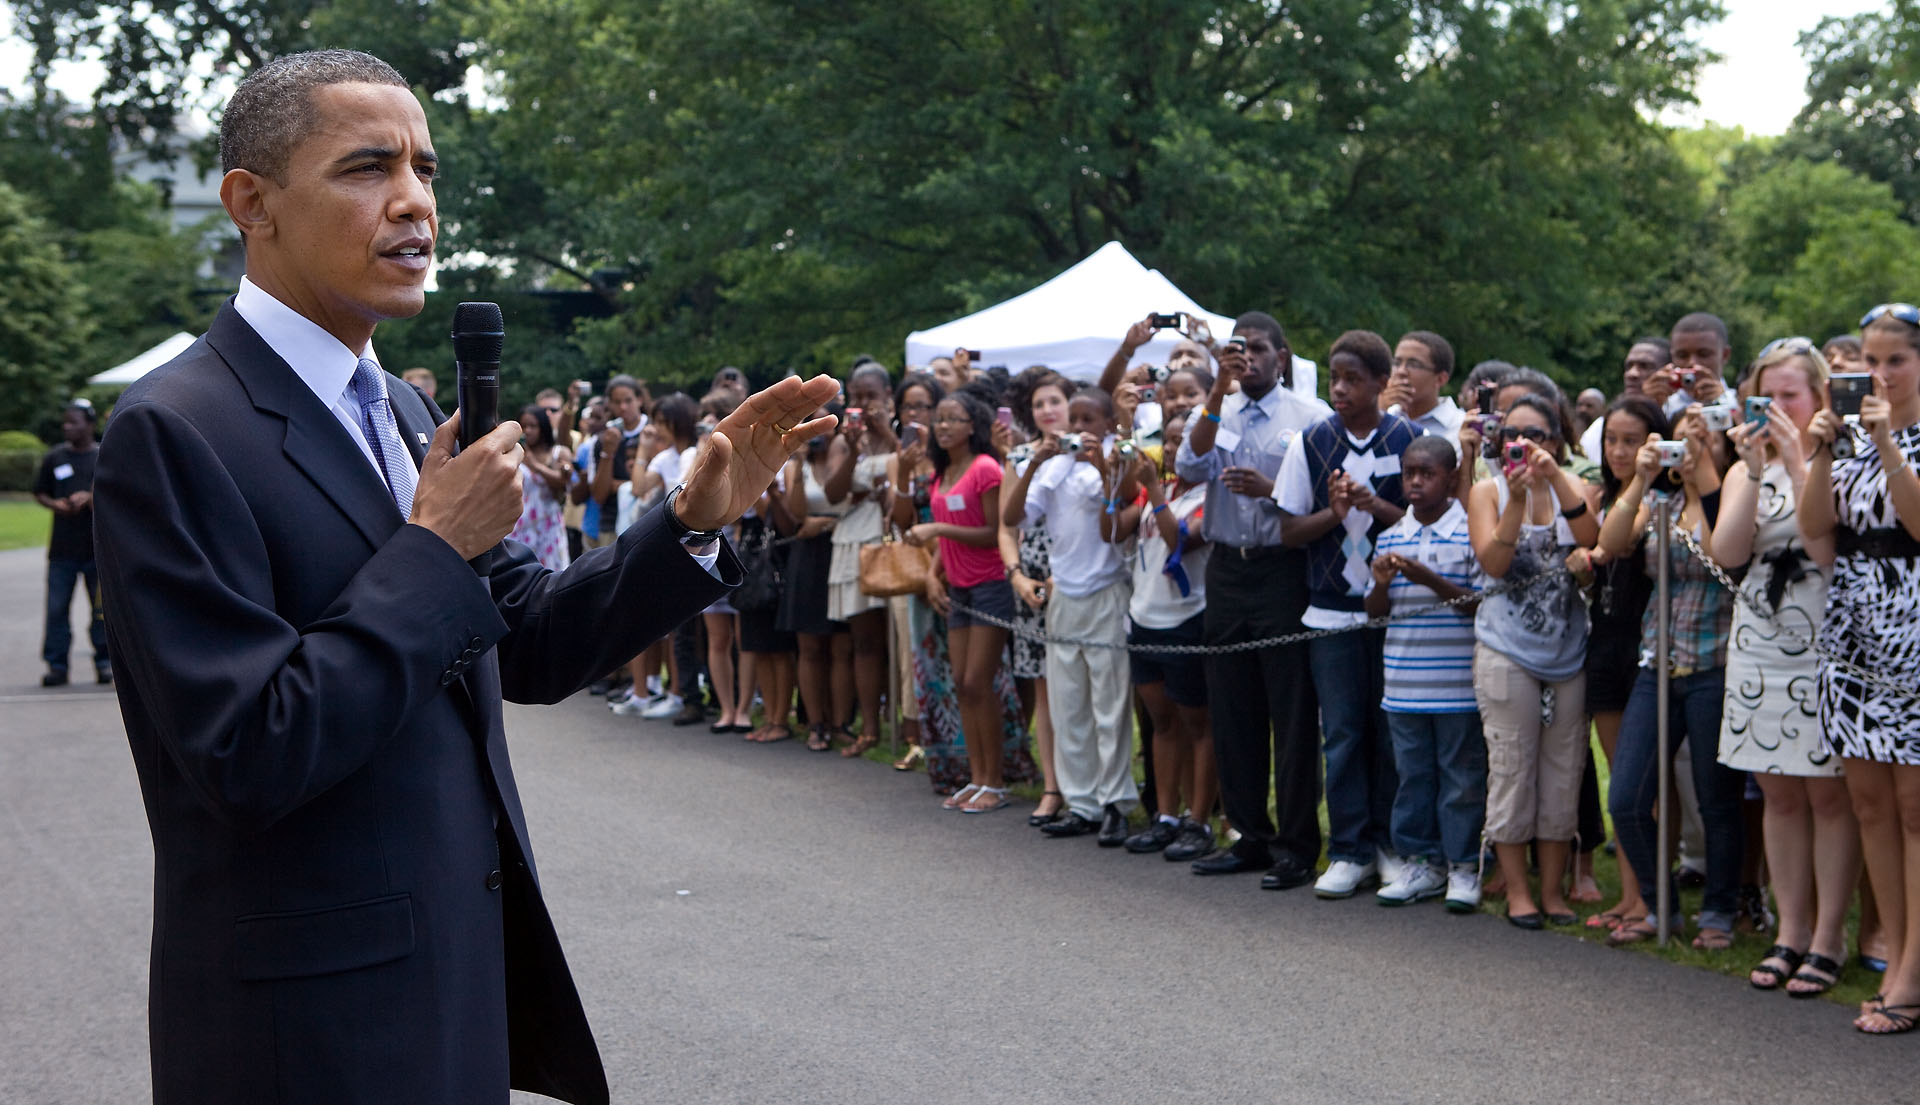 President Obama Speaks at Fatherood Barbecue